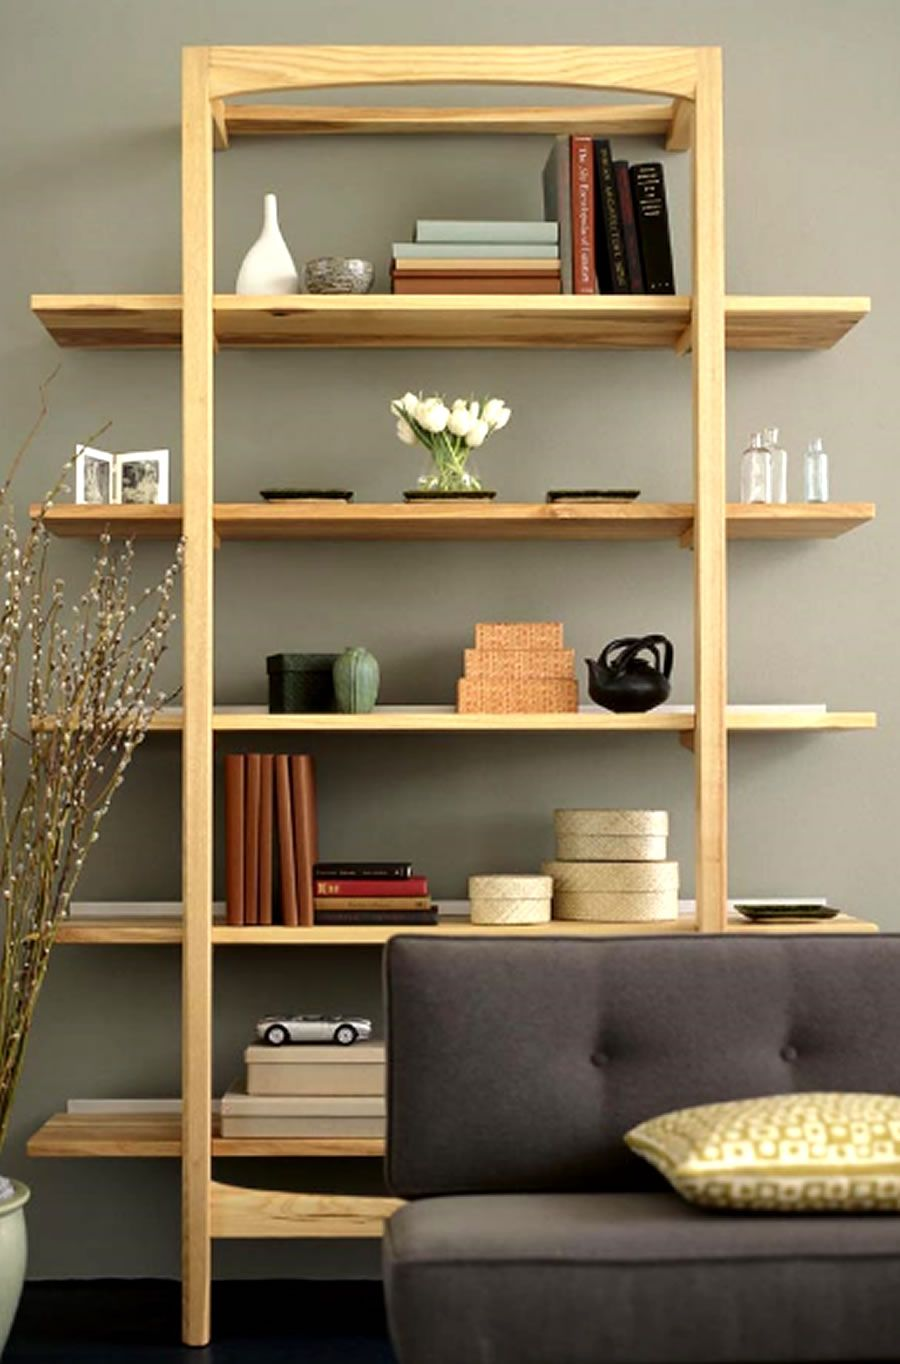 Office shelves modern luxury office shelves storage furniture design by city joinery - Wood furniture design ...